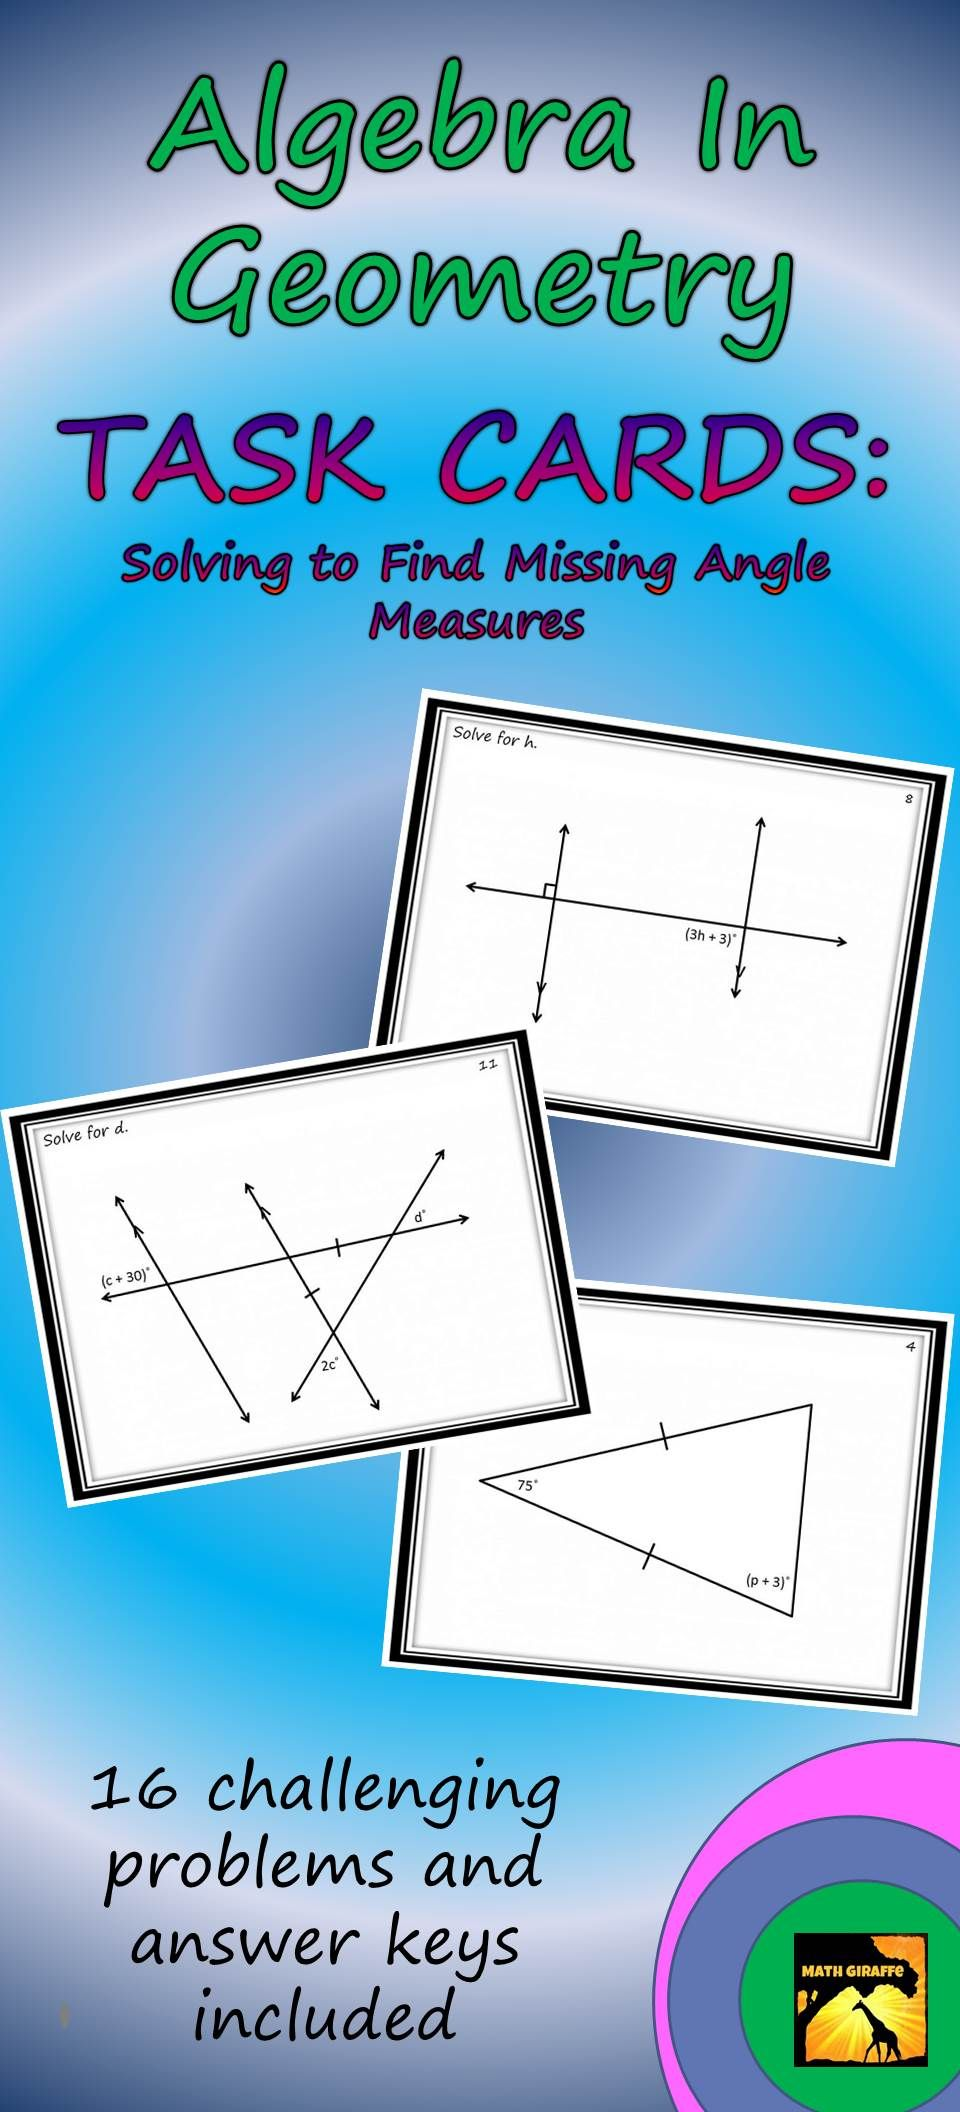 Algebra In Geometry Task Cards: Solving to Find Missing Angle ...